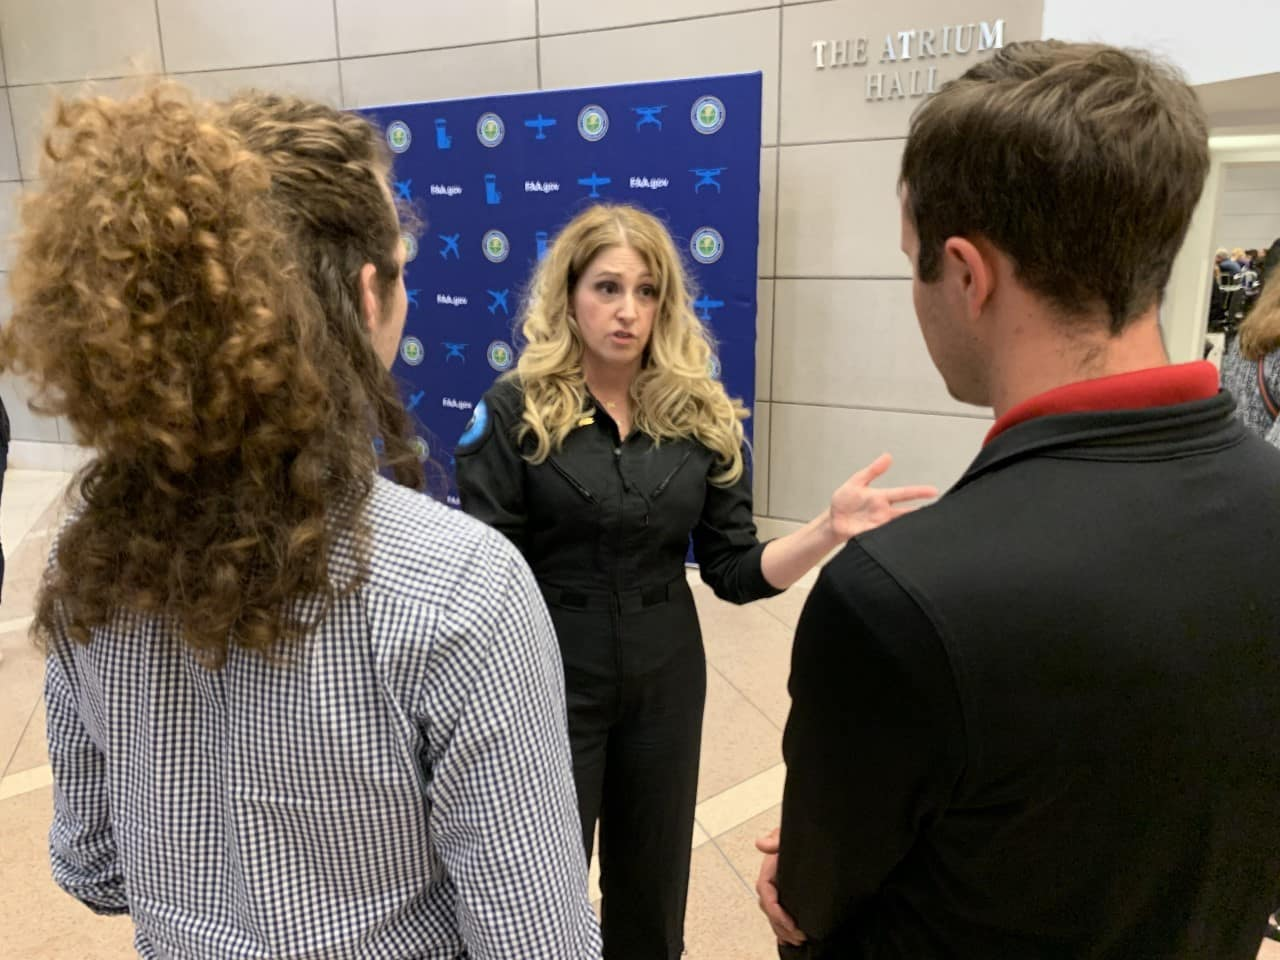 Embry-Riddle students Max Cannon and Noah Eudy meet Virgin Galactic Chief Astronaut Instructor Beth Moses at the 2020 Commercial Space Transportation Conference held in January in Washington, D.C.